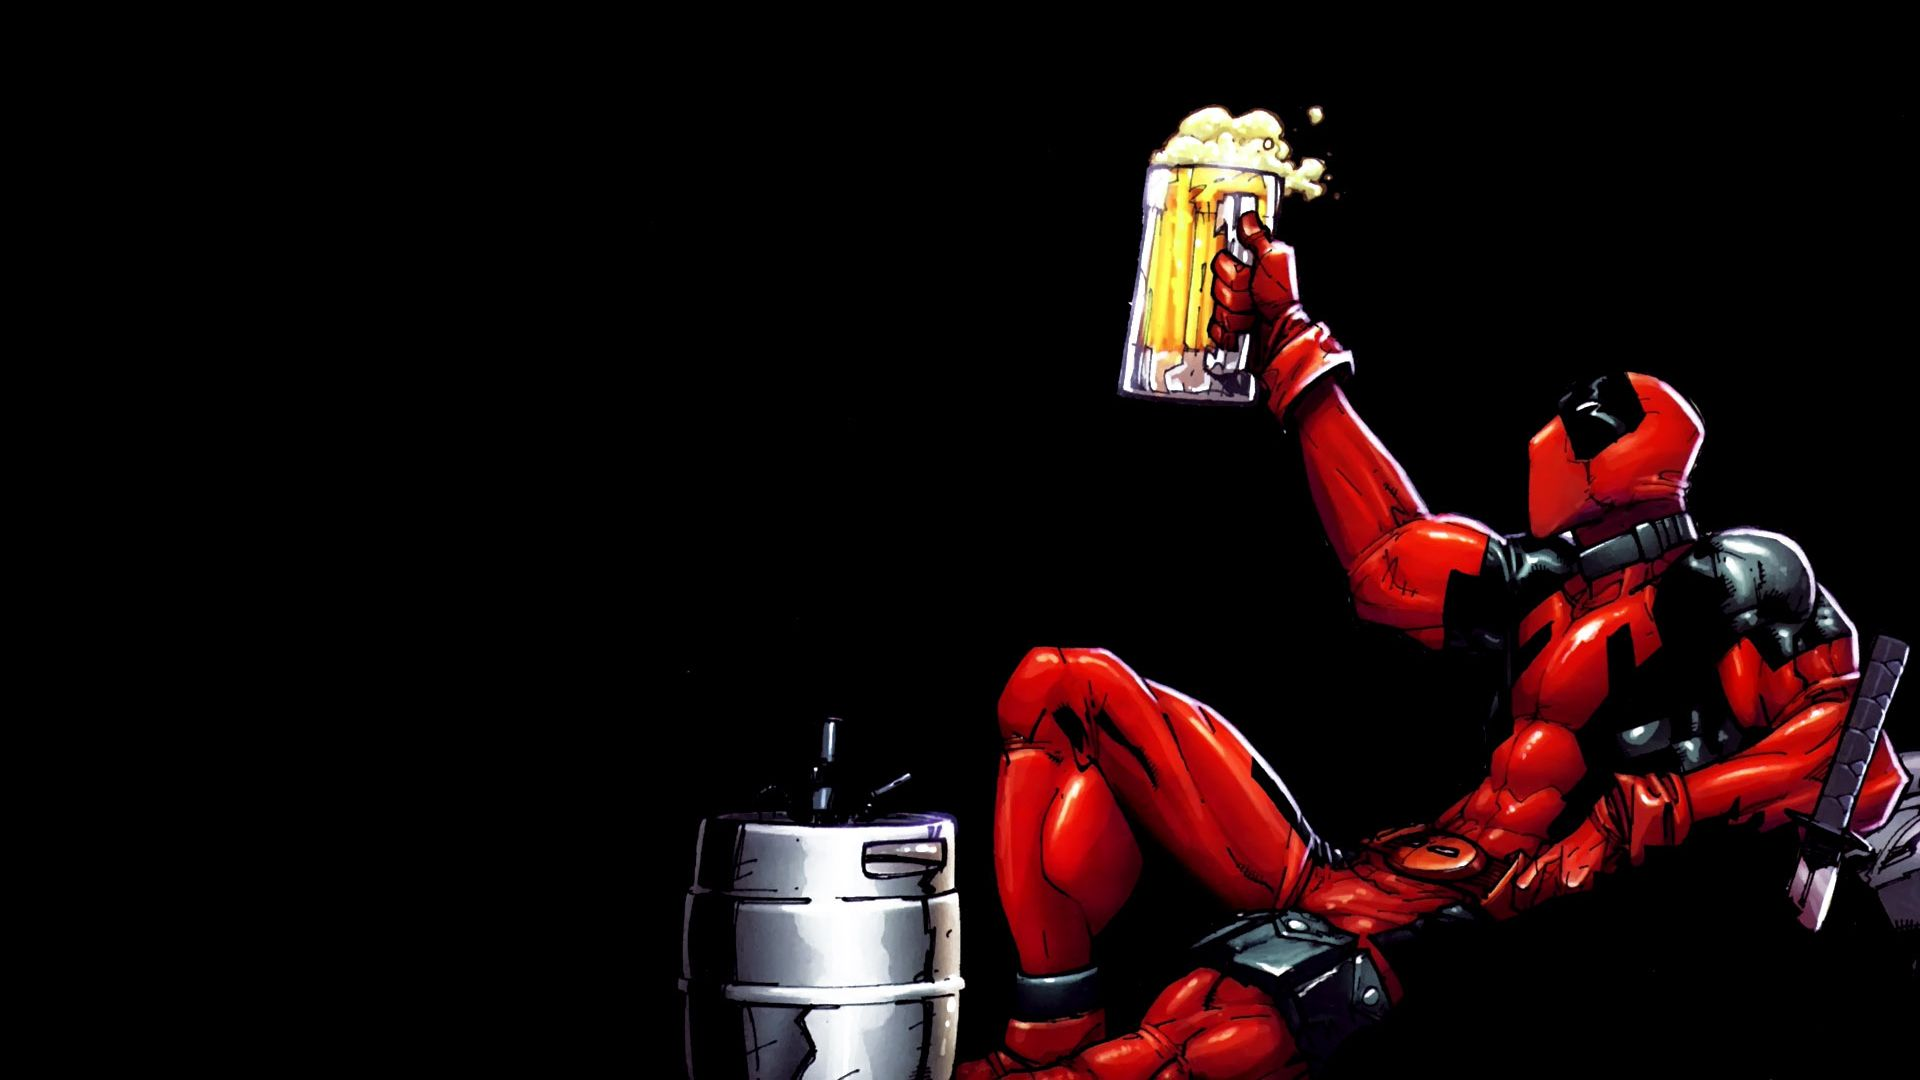 Ultimate Deadpool Wallpapers Top Free Ultimate Deadpool